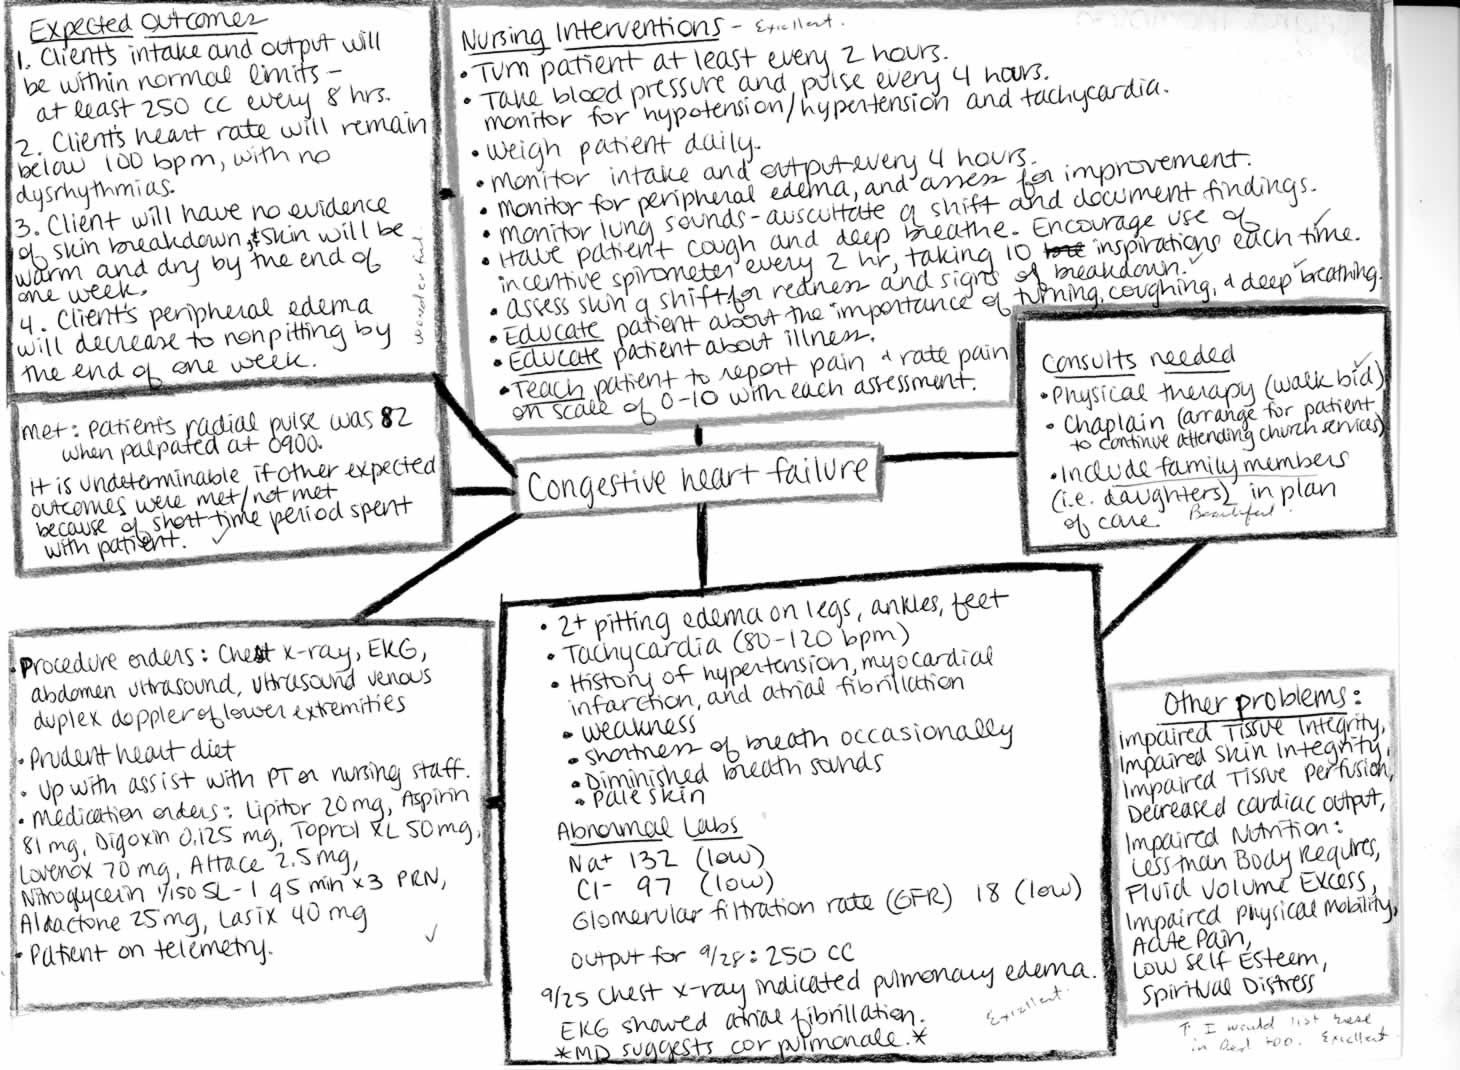 Nursing Diagnosis Concept Maps | Concept Map Concept Map Date ...